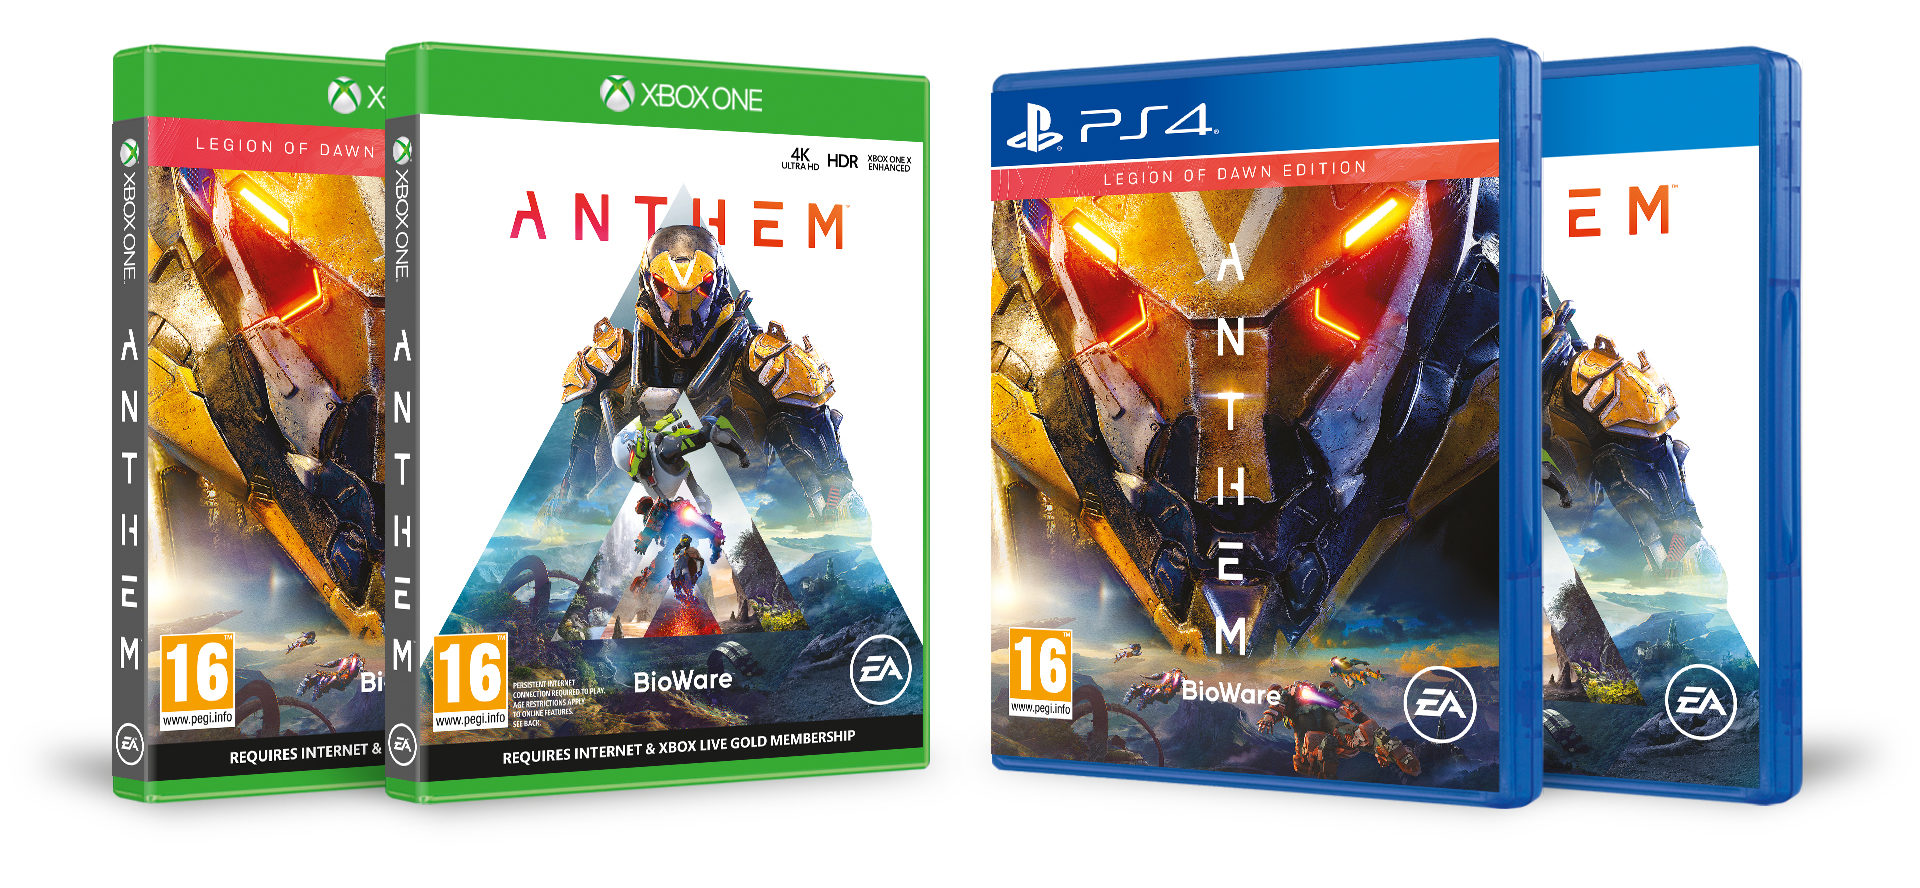 Anthem_Packshot_EA_Video_Game